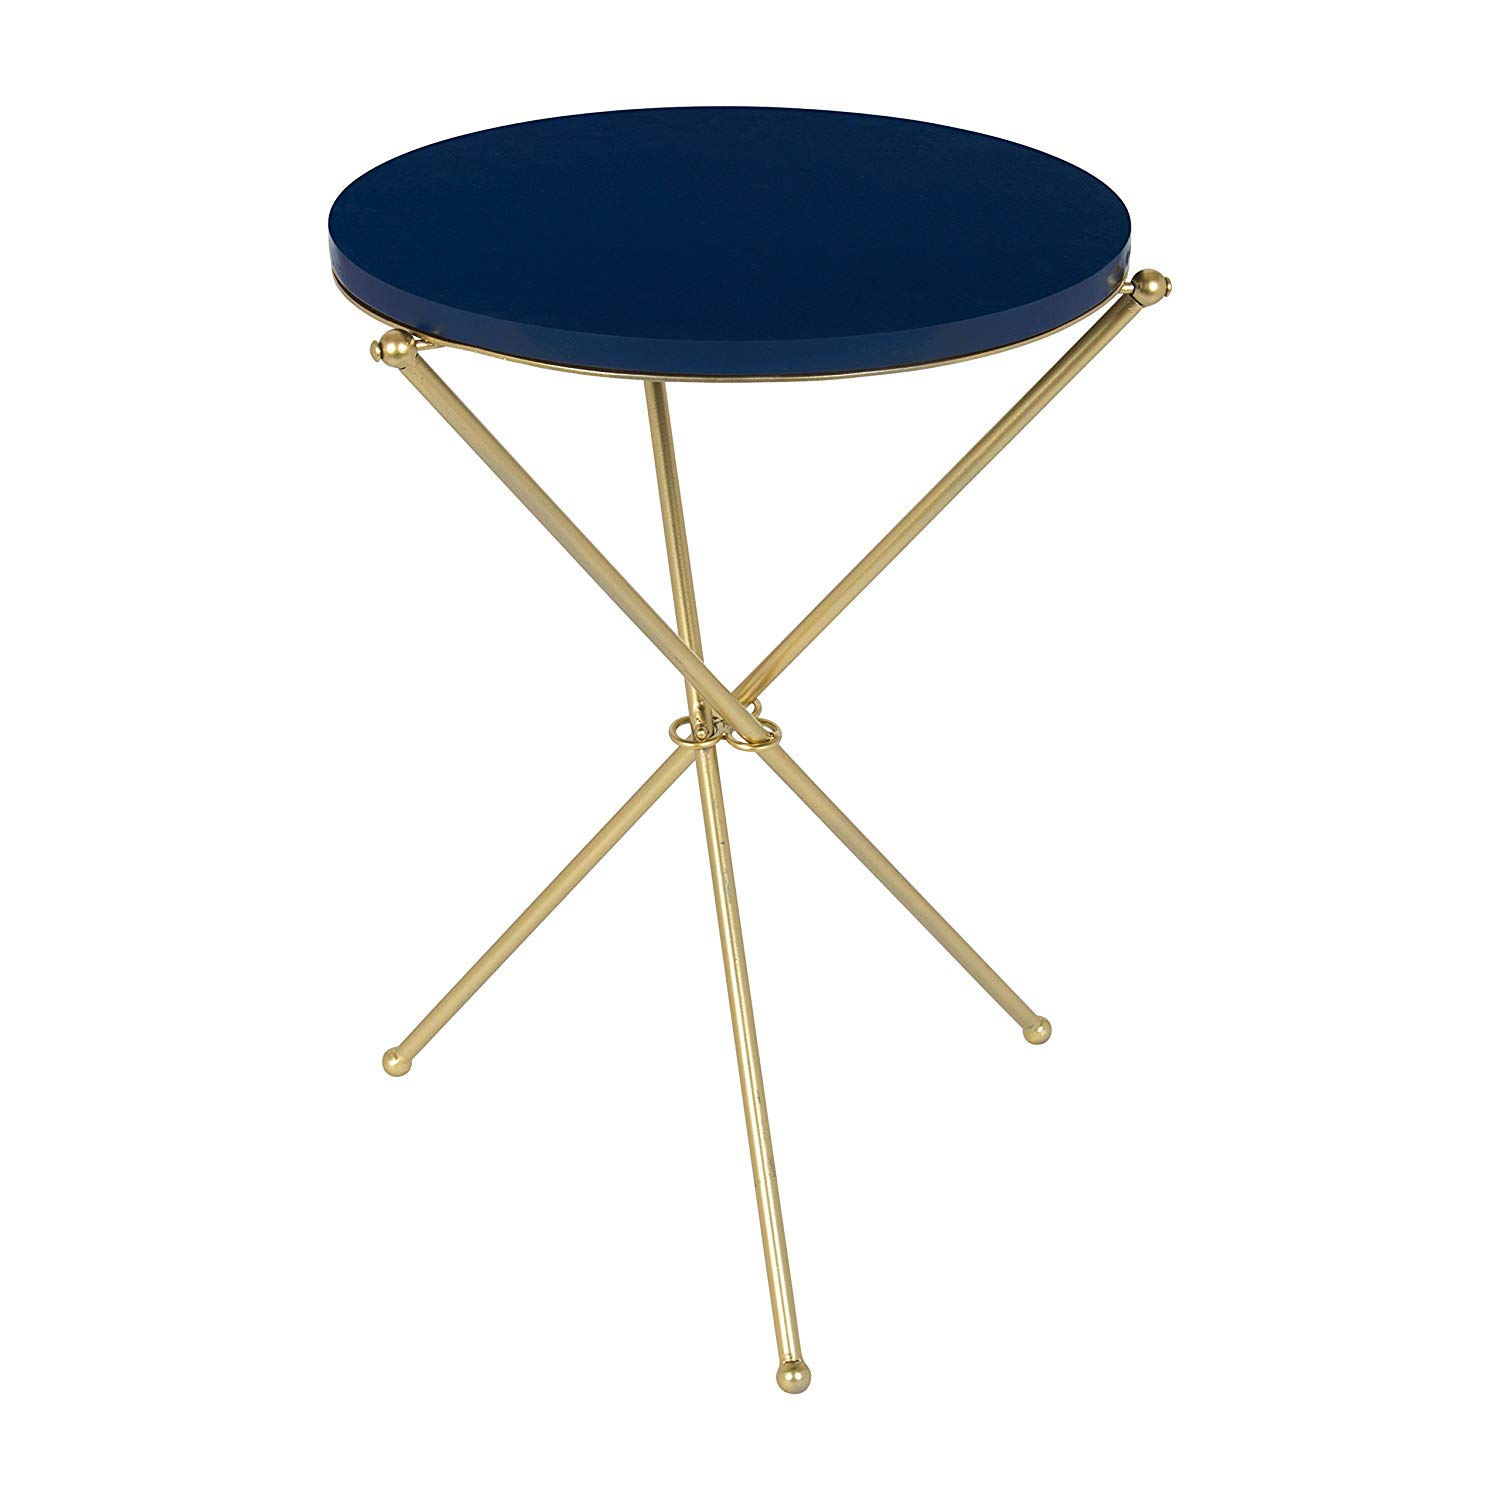 kate and laurel emellyn modern luxe folding side accent outdoor table with round painted wooden top metal tripod legs navy blue gold inch diameter brown coffee home storage